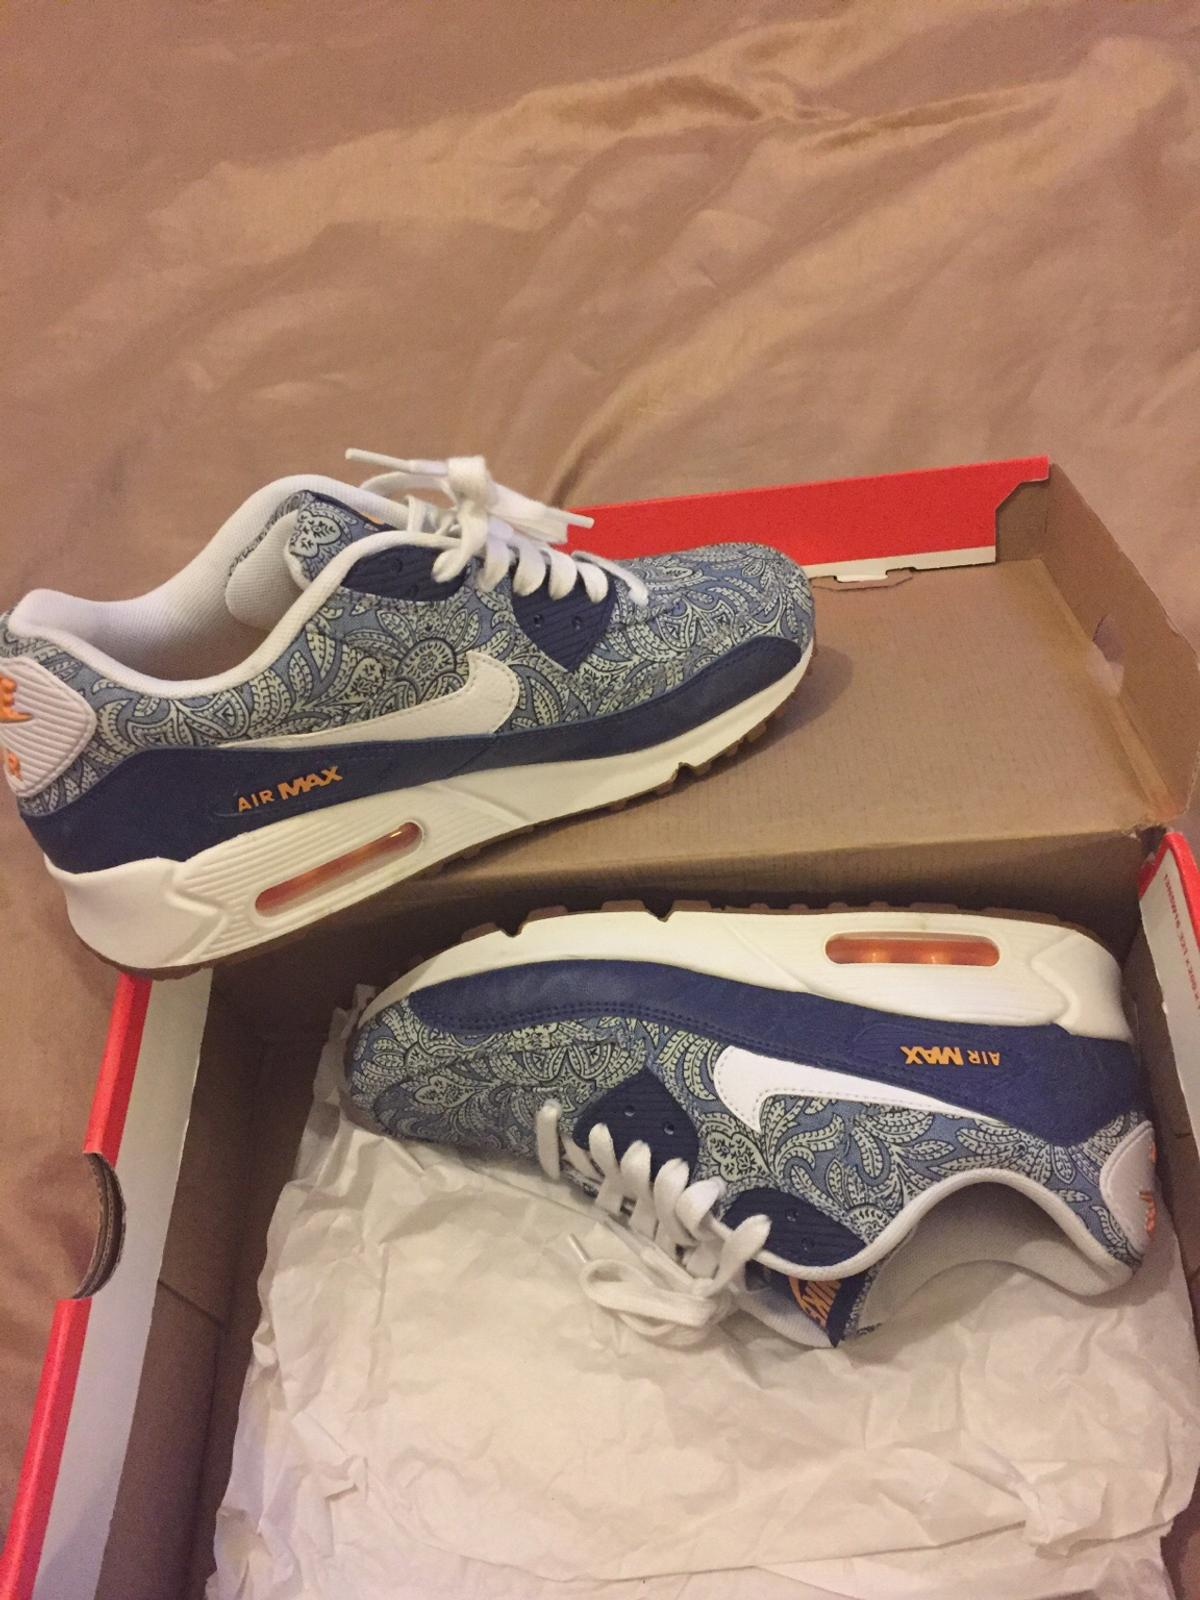 SOLD OUT Air Max 90. Limited Edition Libertys